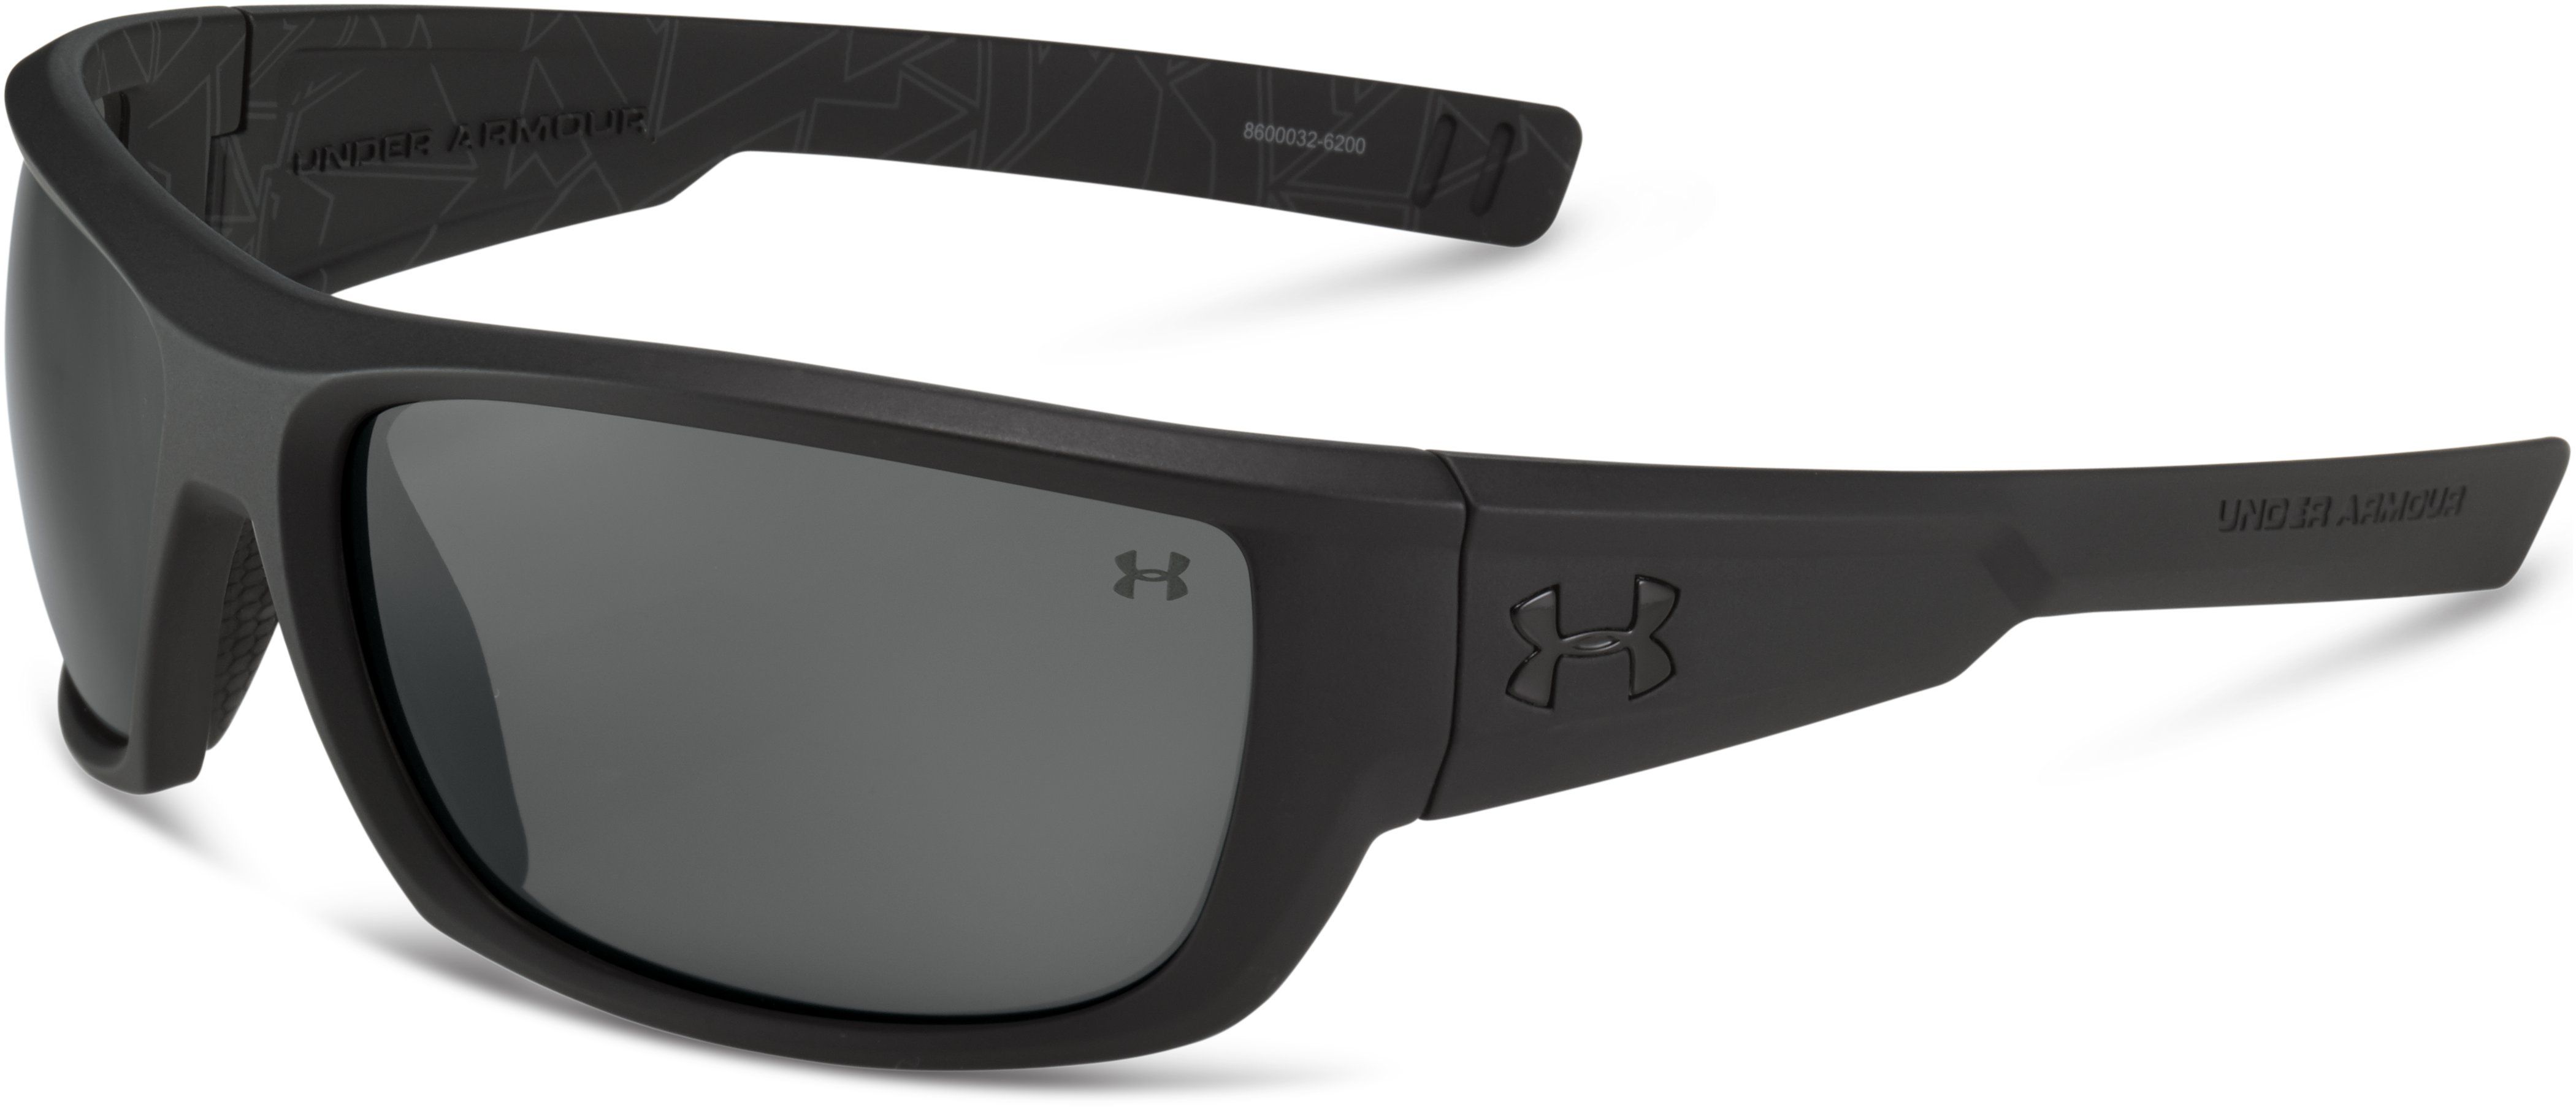 UA Rumble Sunglasses, Satin Black With Print